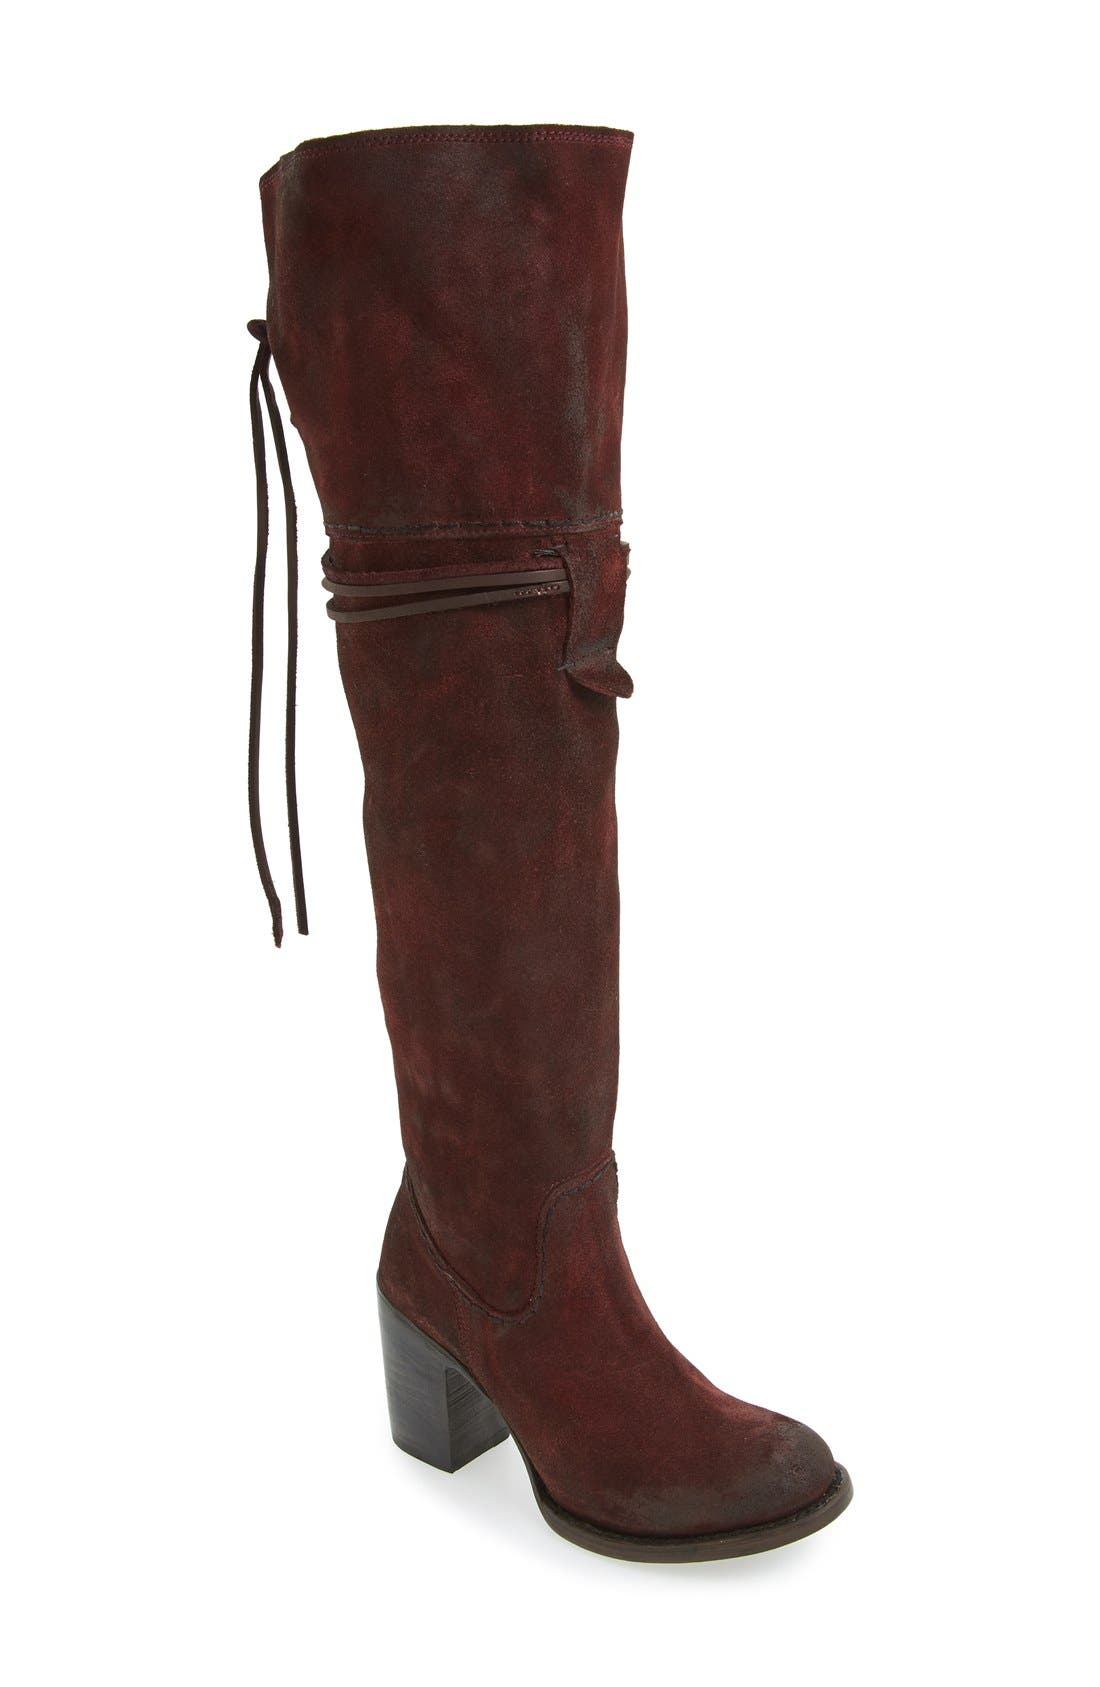 Alternate Image 1 Selected - Freebird by Steven Brock Over the Knee Boot (Women)